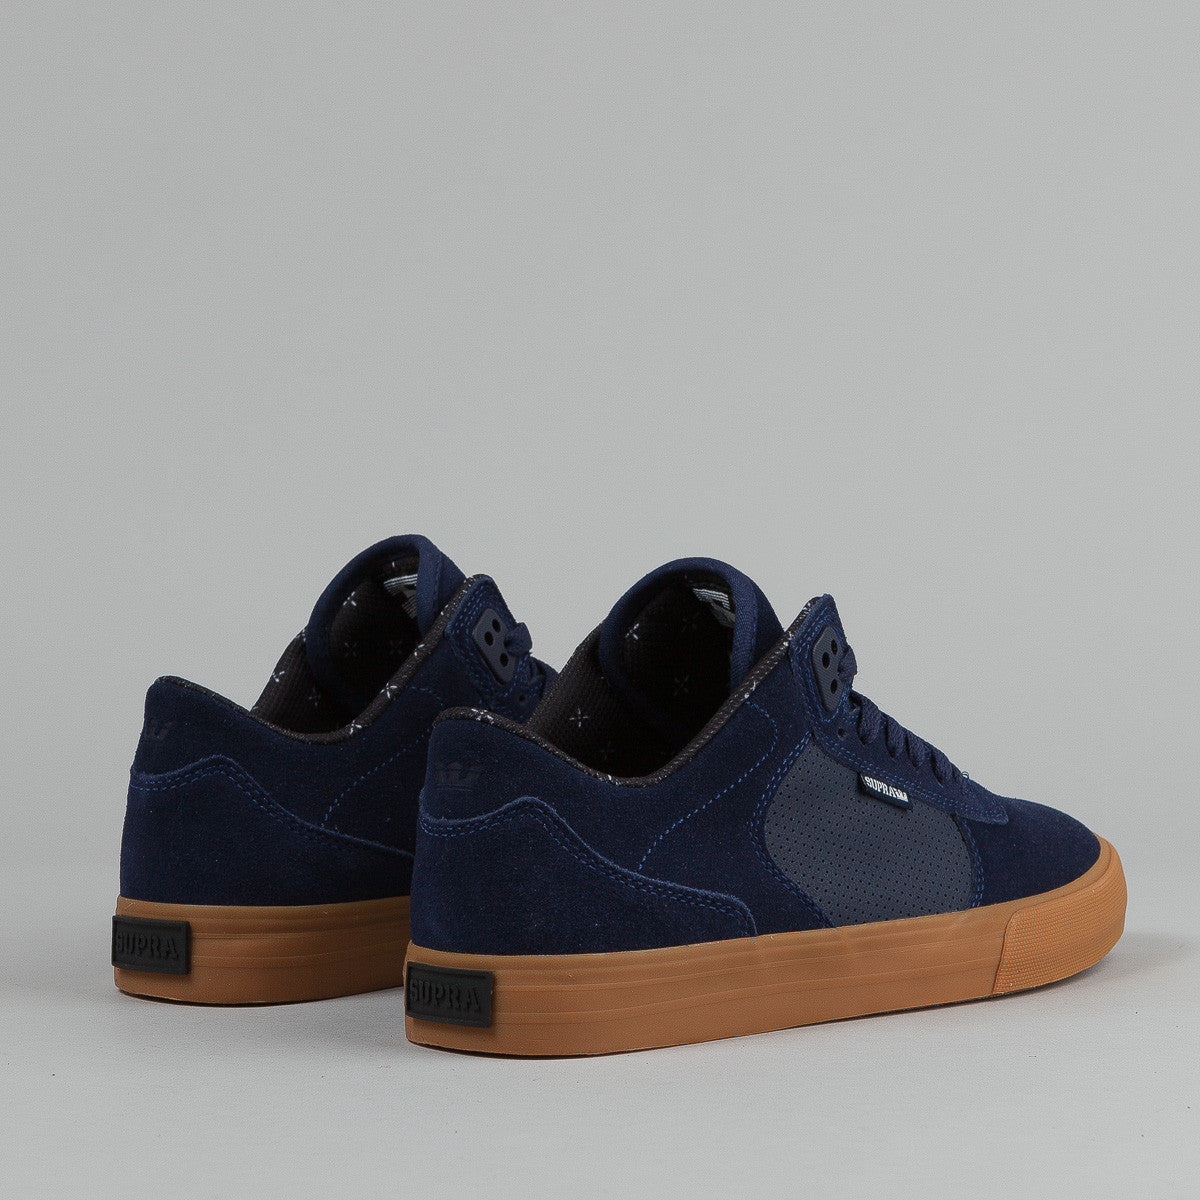 Supra Erik Ellington Vulc Shoes - Navy - Gum